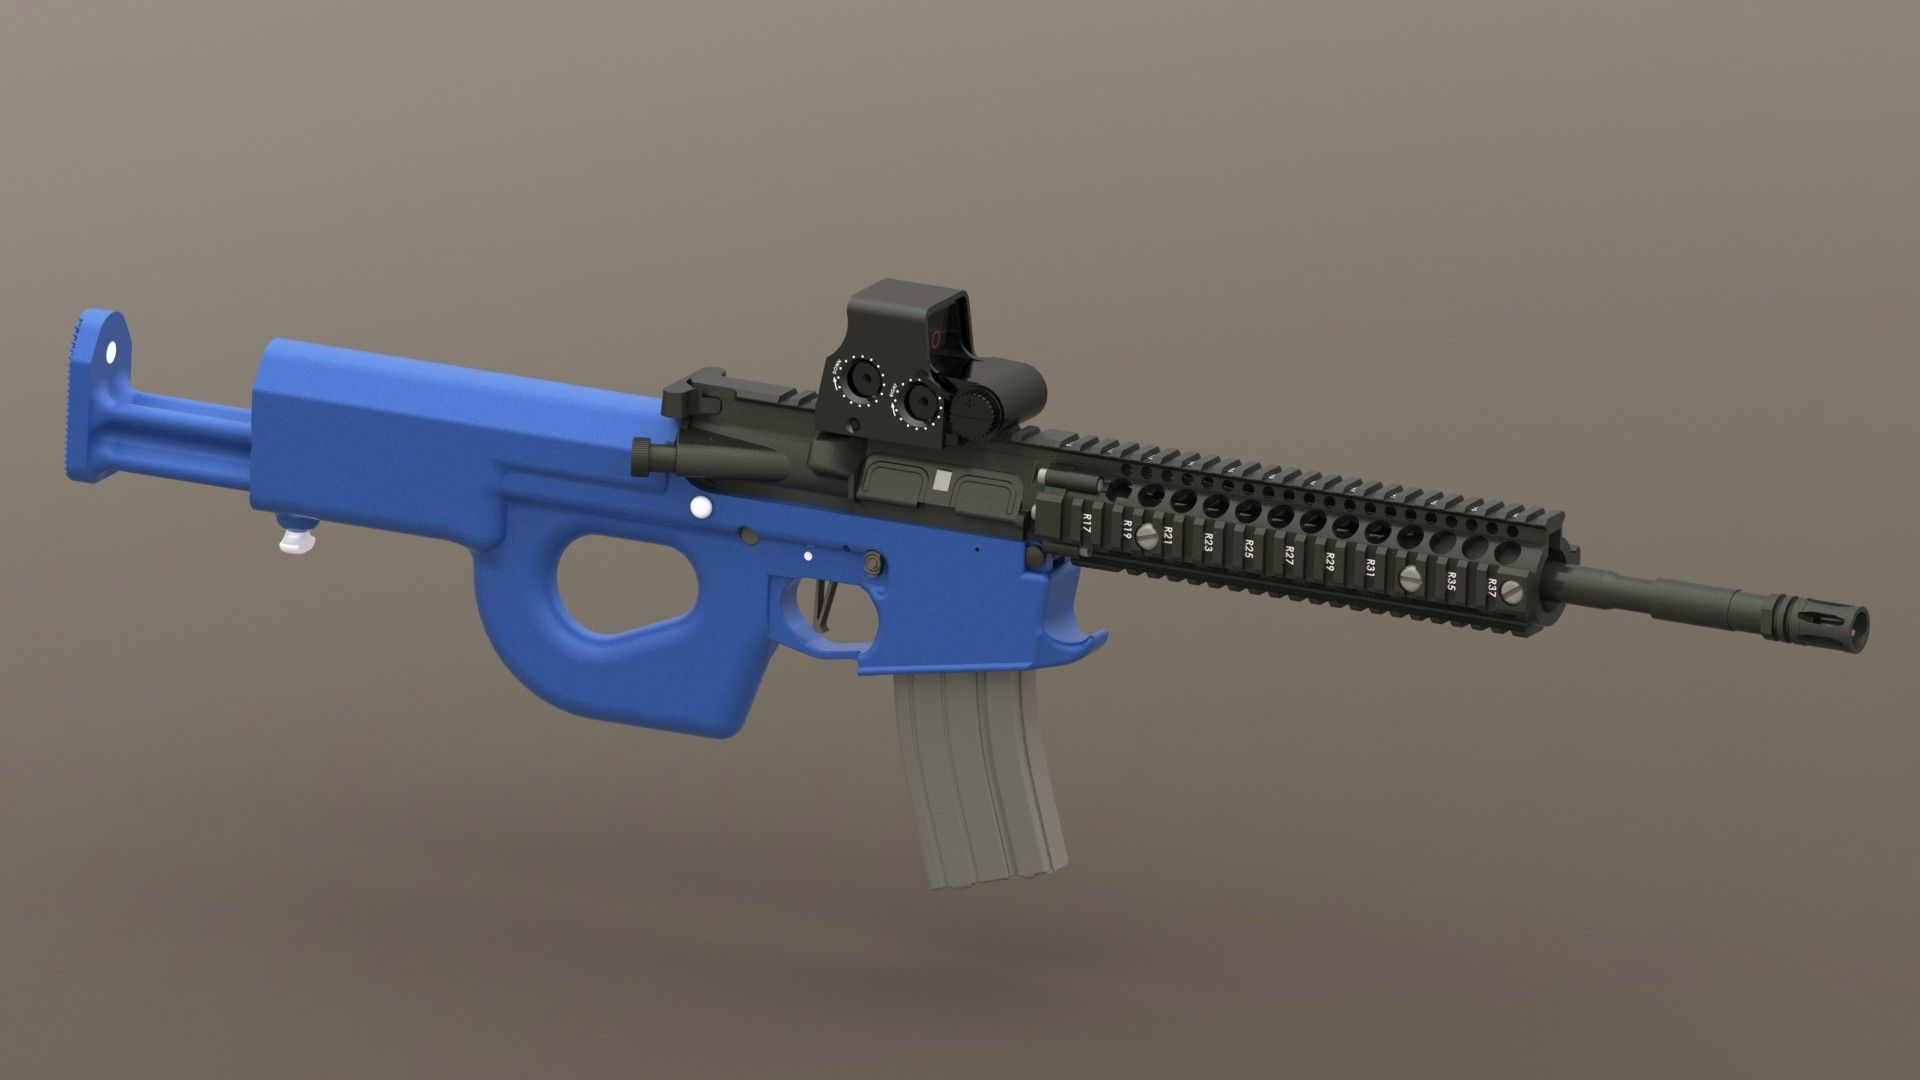 Pin On 3d Printed Weapon